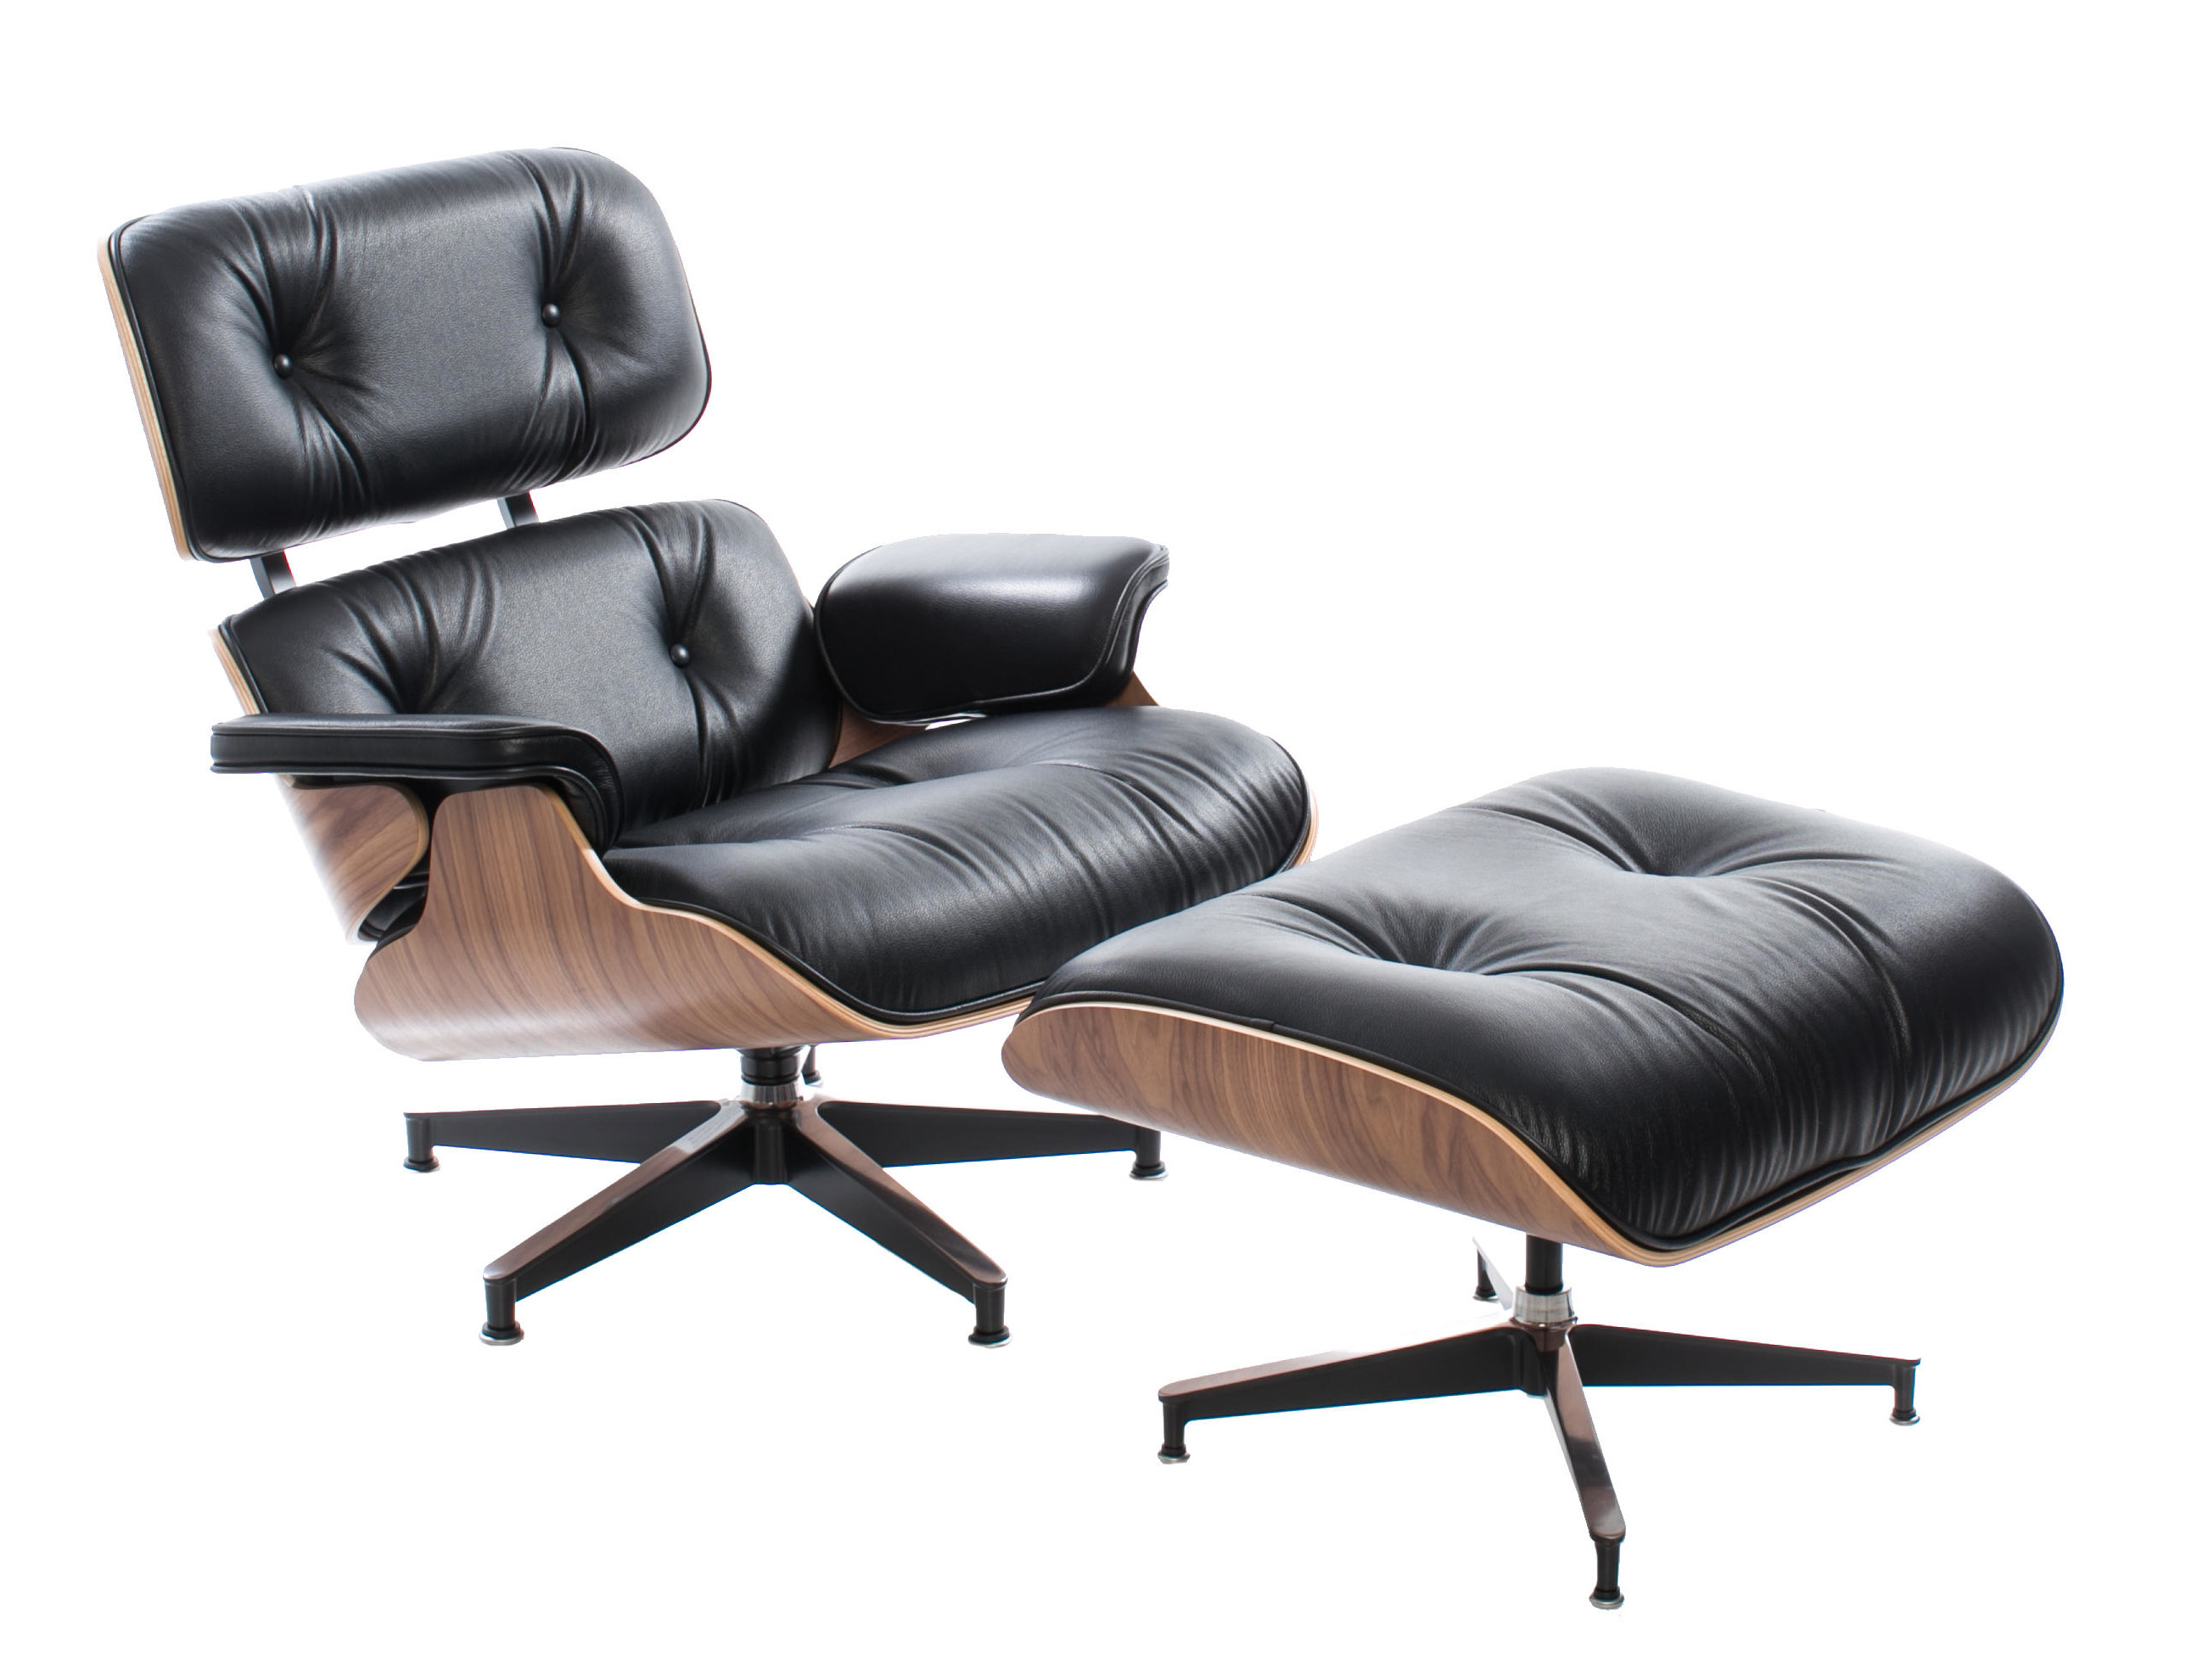 Original eames chair -